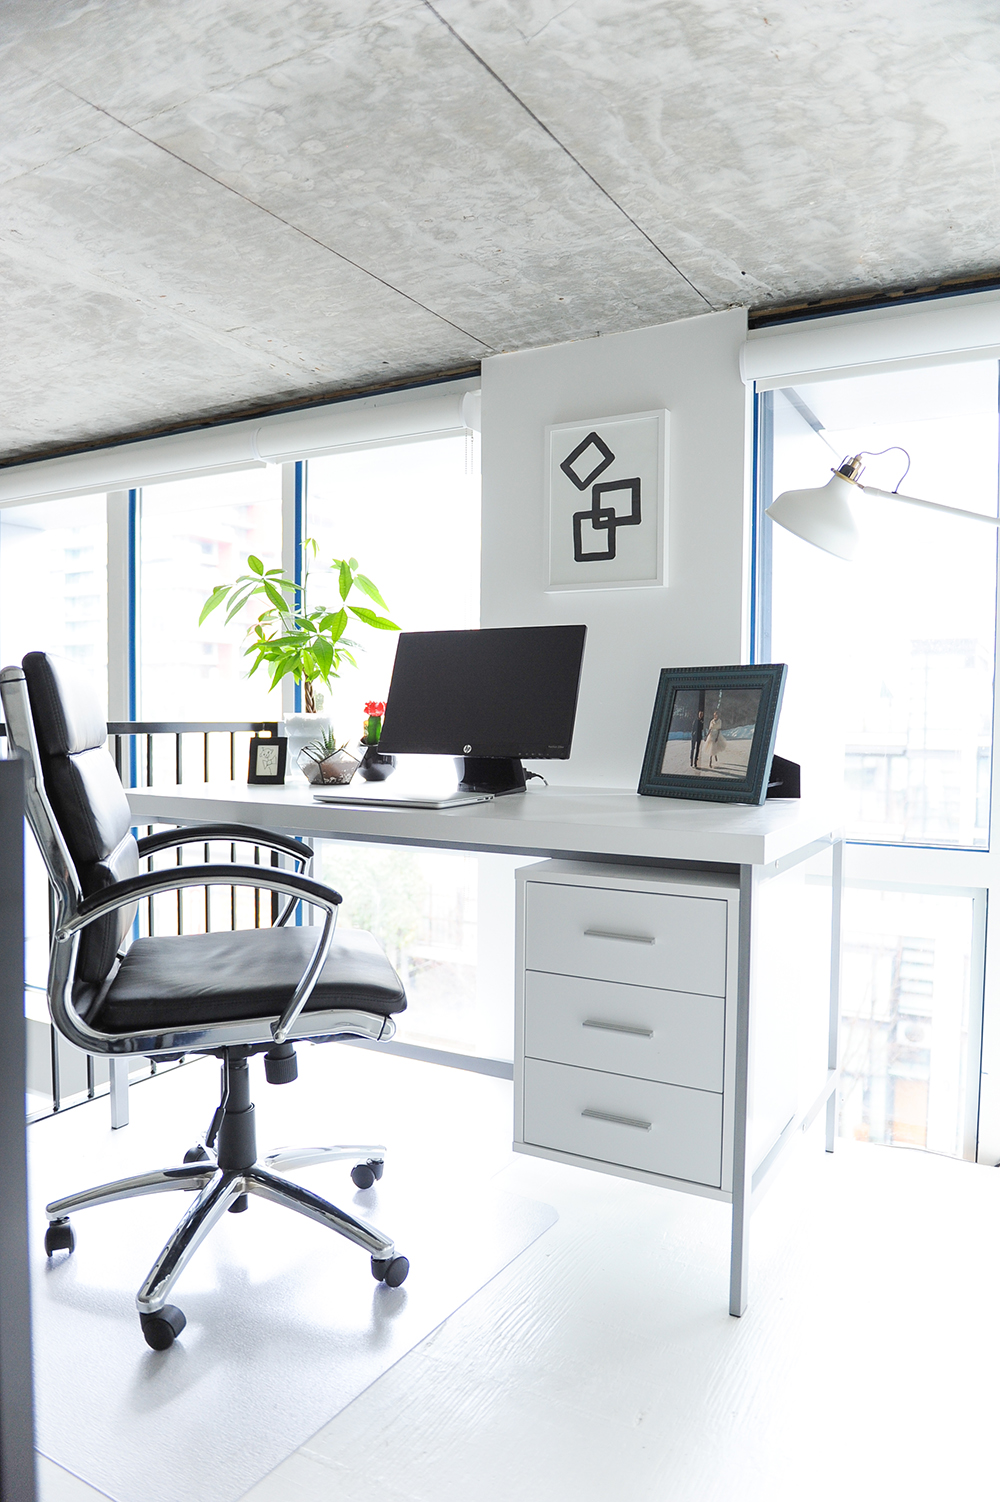 A bright office space with a grey and white table with a computer and framed photo sat on top of it, with a white filing cabinet attached to the base of the desk and a black desk chair